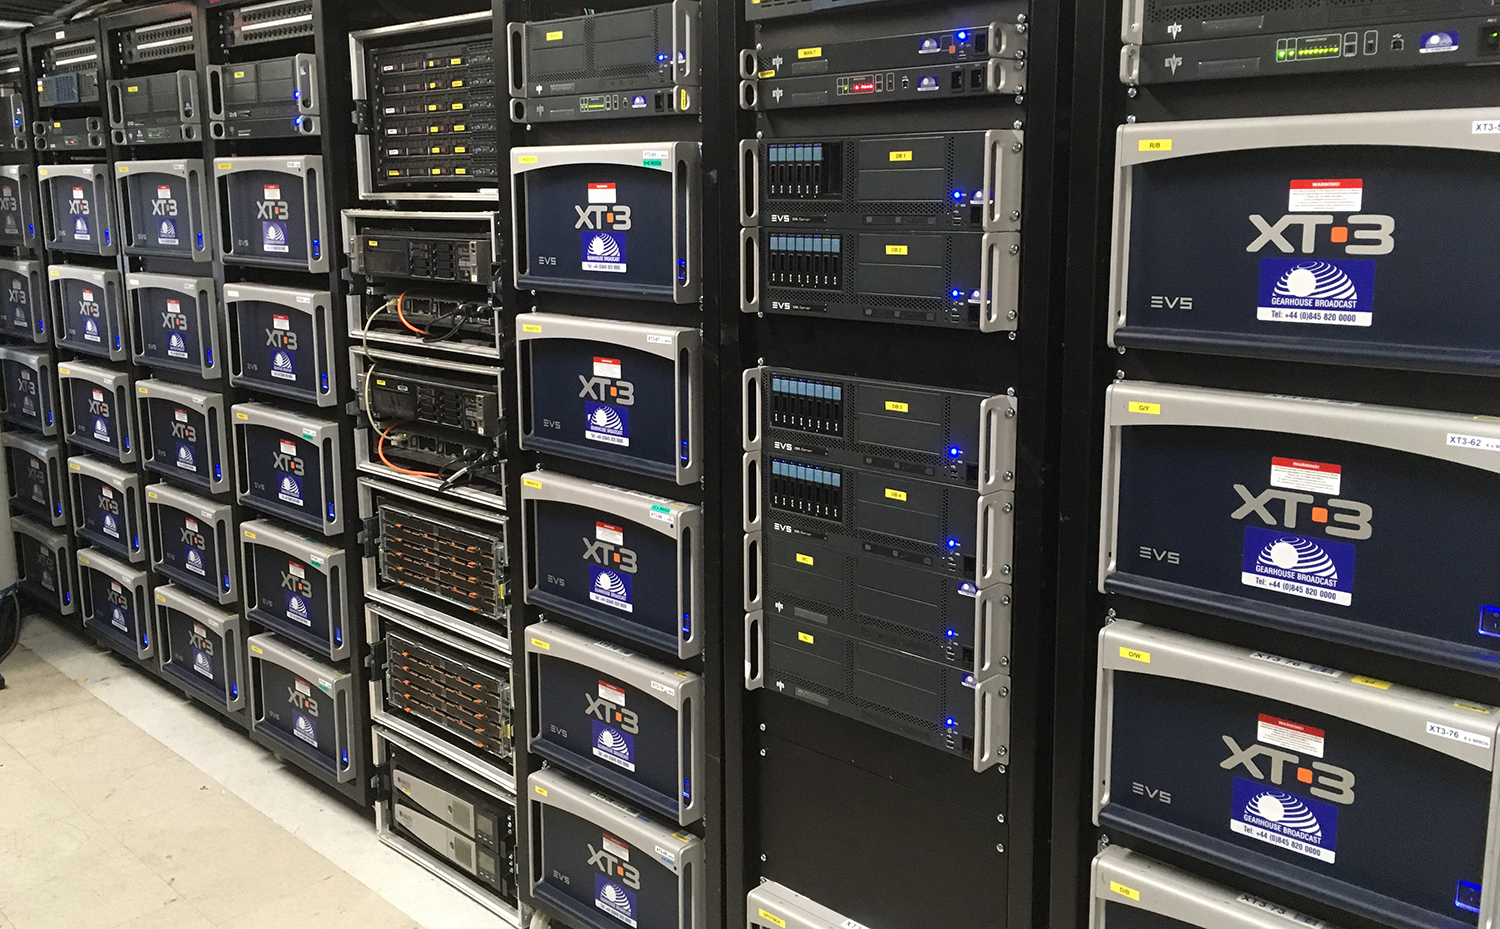 32 EVS XT3 servers housed inside the Central Apparatus Room